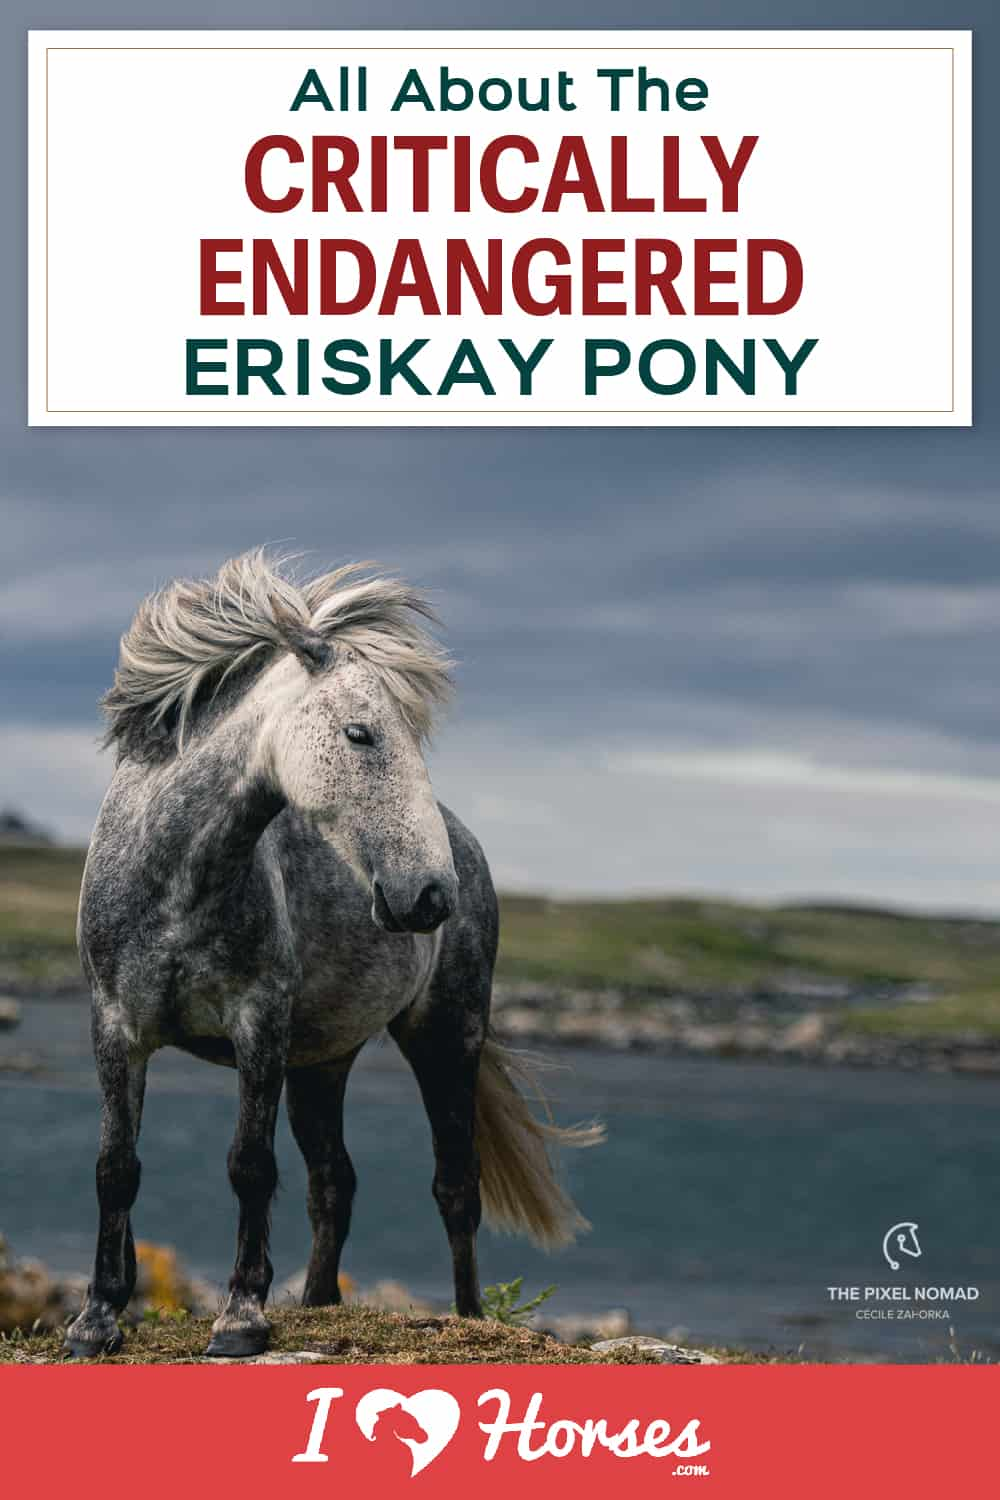 Meet The Critically Endangered Eriskay Pony